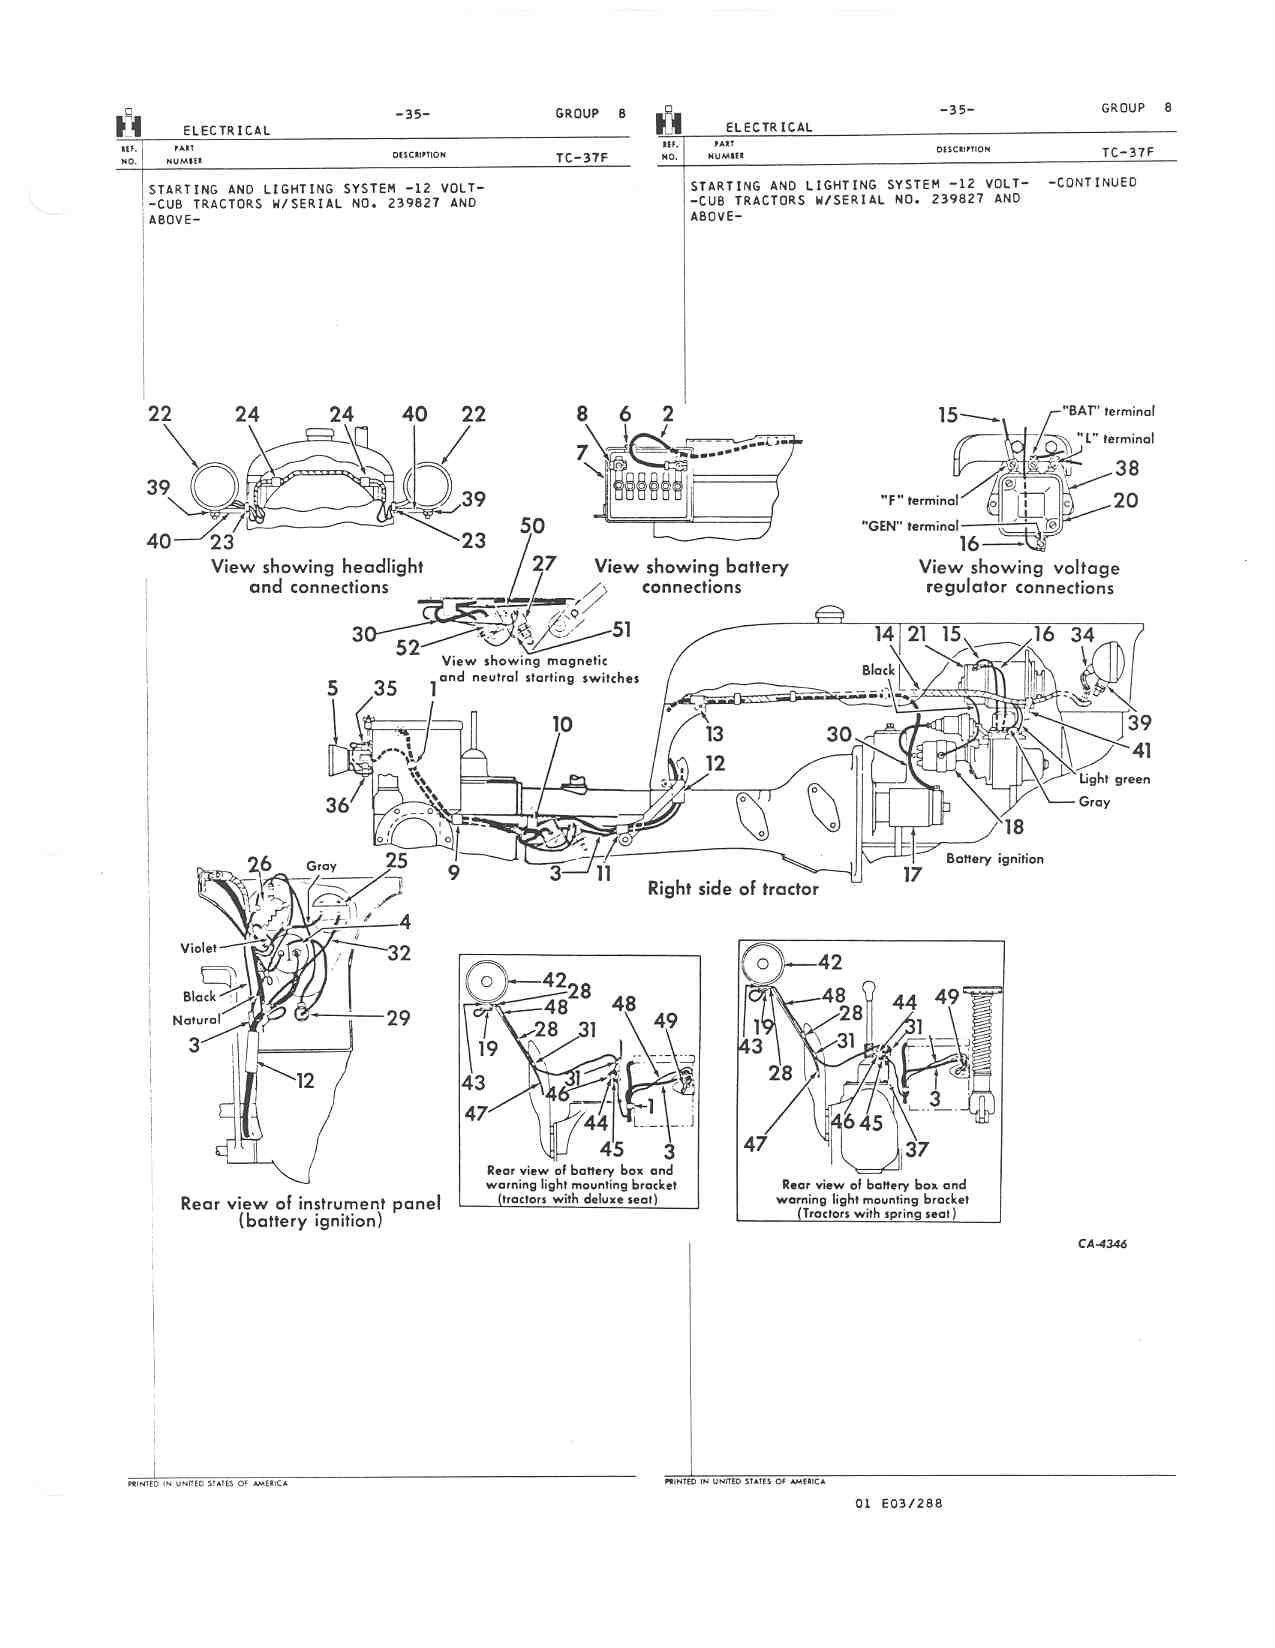 Farmall Cub Parts Diagram Pto Lever Does Not Engage Farmall Cub My Farmall  Cub 6 Volt Wiring Diagram Farmall Cub Pto Diagram